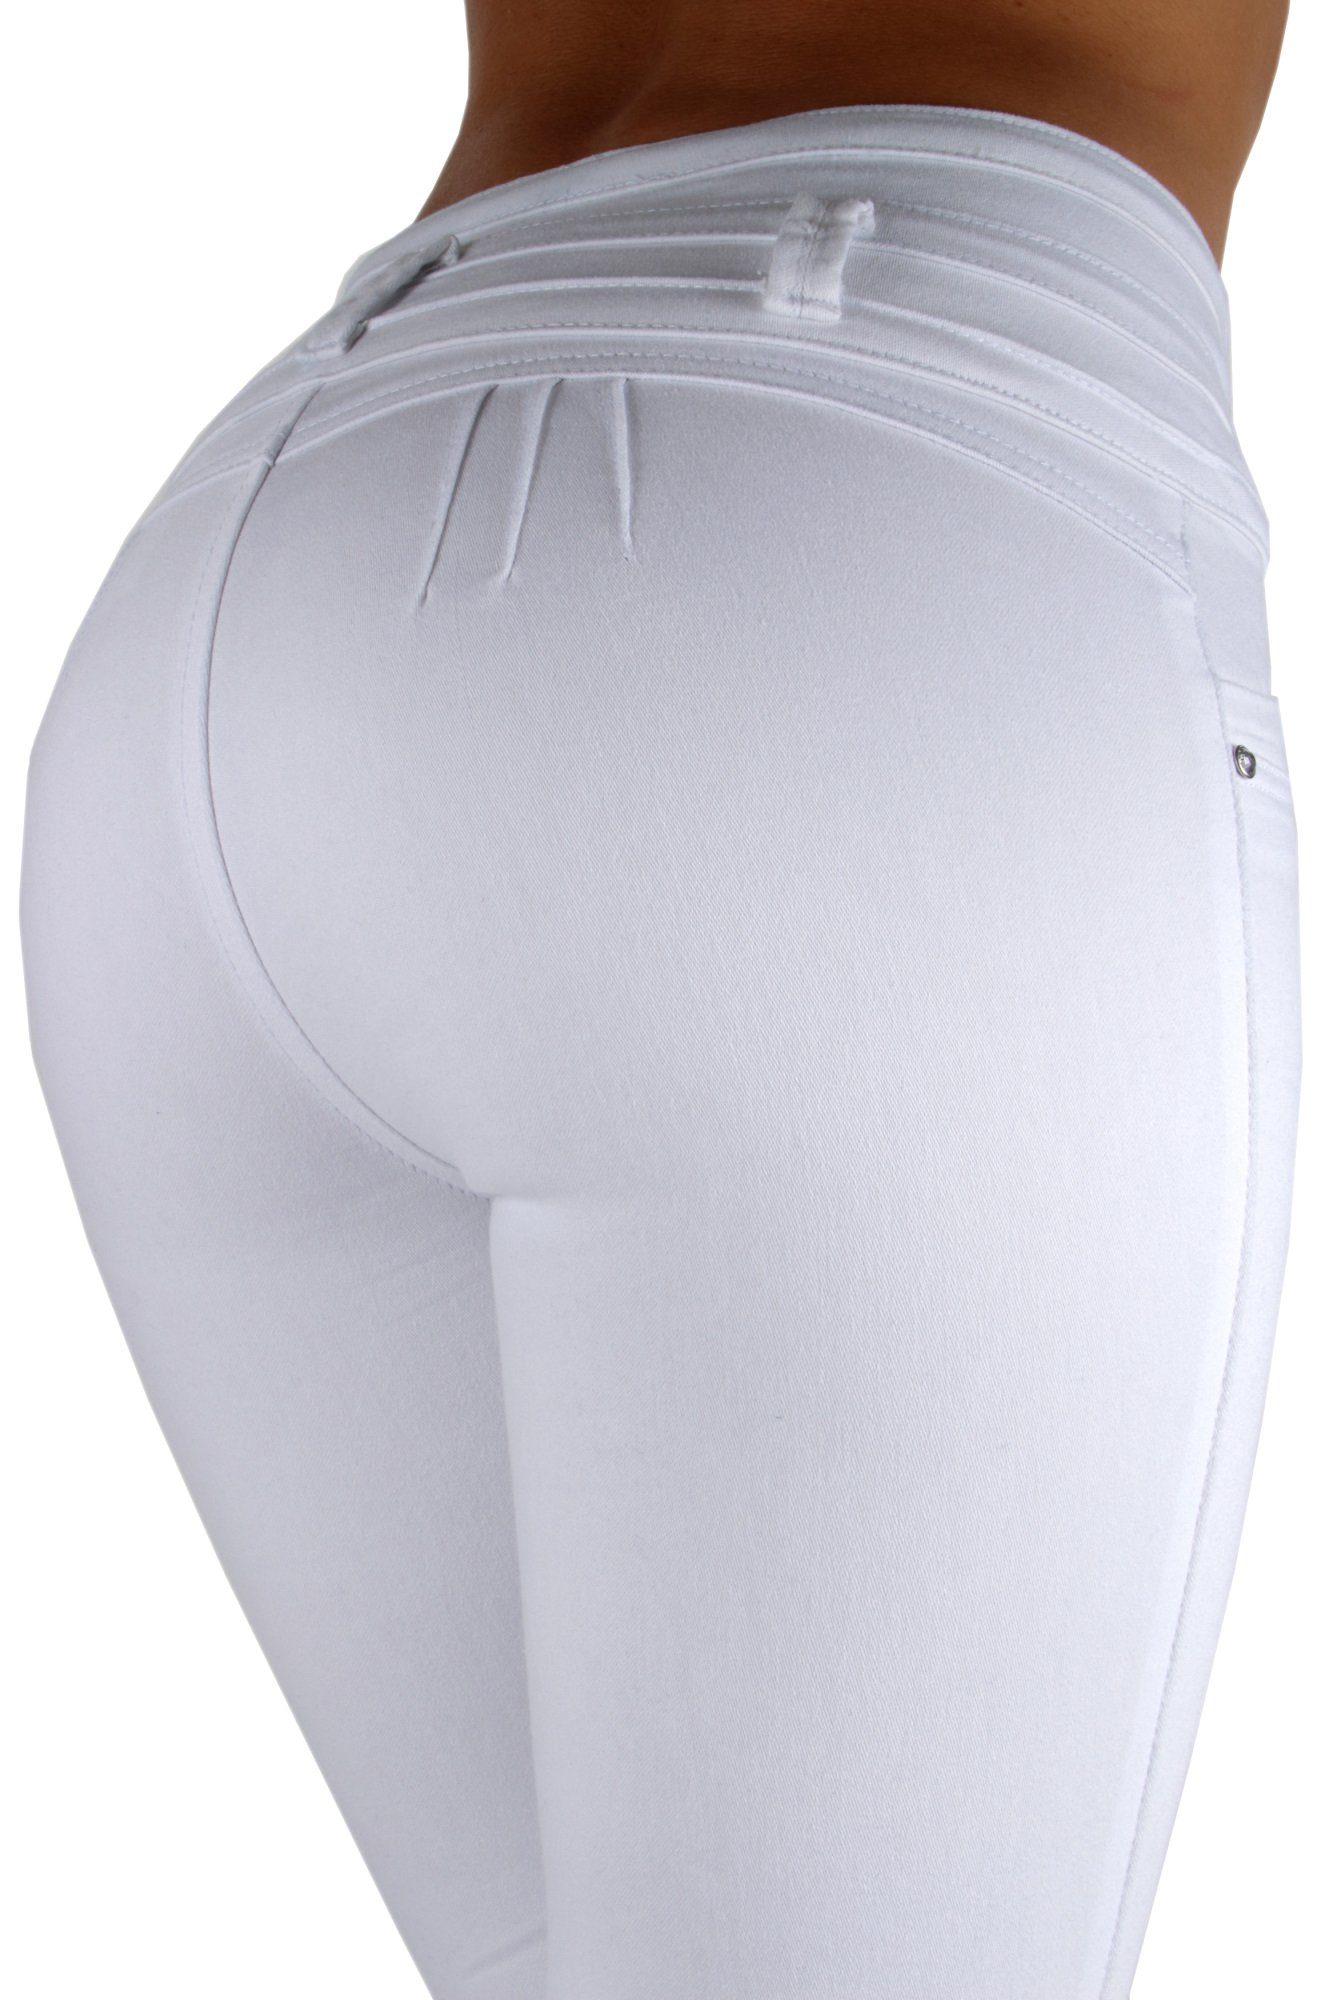 Fashion2Love K1031 - Colombian Design, Levanta Cola, High Waist Skinny Jeans in White Size 1